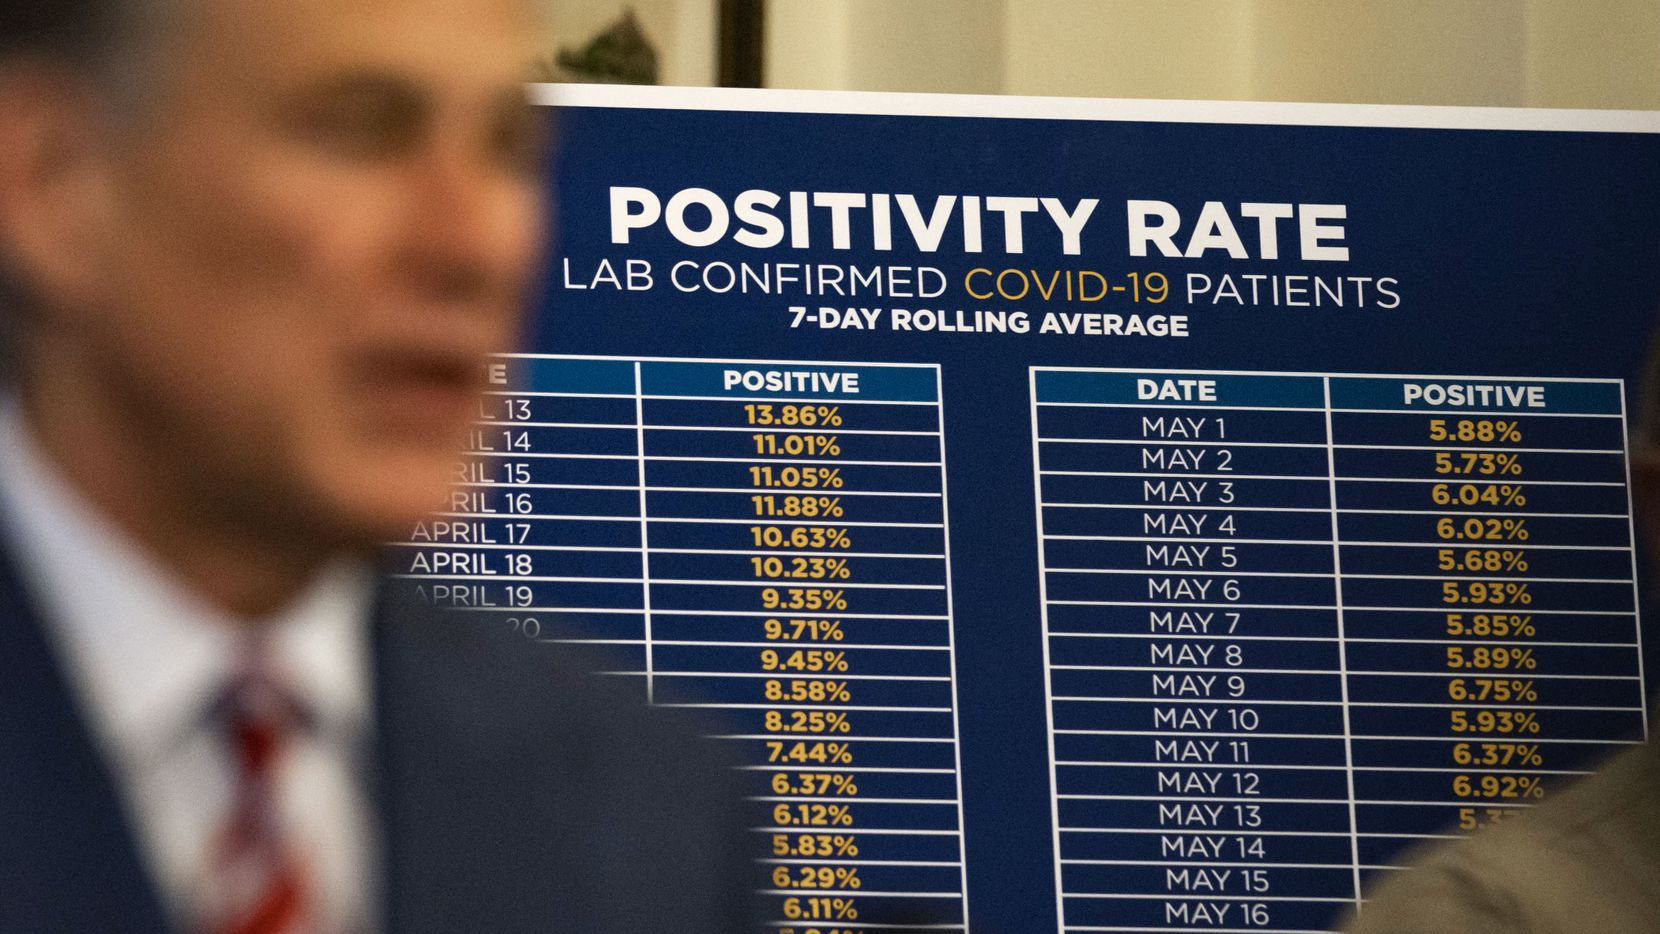 A Positivity Rate chart showing the rate of lab-confirmed COVID-19 patients is positioned behind Texas Governor Greg Abbott as he announces the reopening of more Texas businesses during the COVID-19 pandemic at a press conference at the Texas State Capitol in Austin on Monday, May 18, 2020. (Lynda M. Gonzalez/The Dallas Morning News Pool)